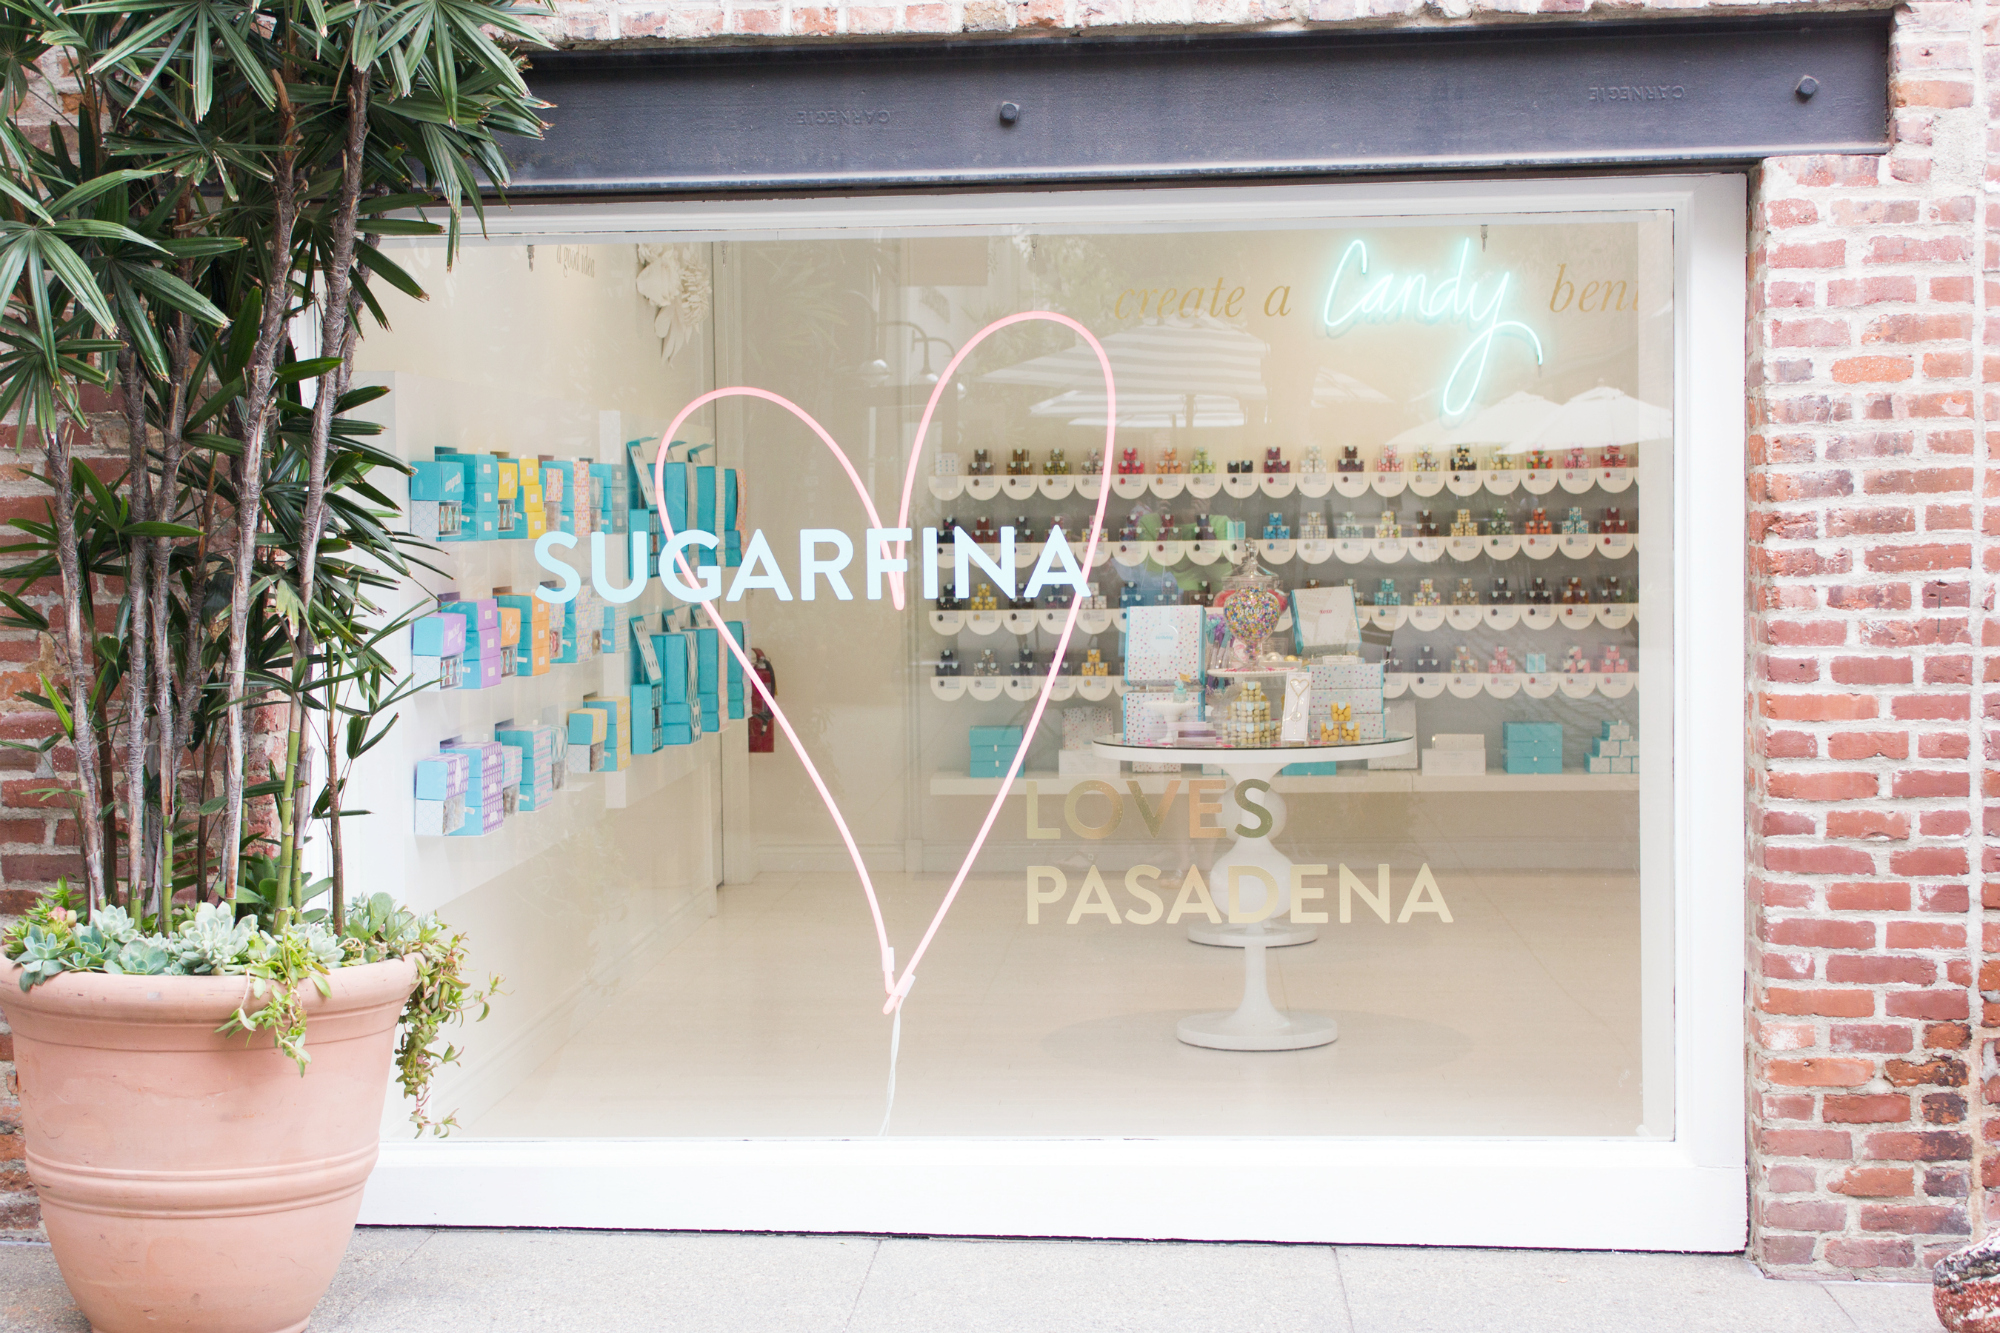 Sugarfina-loves-Pasadena